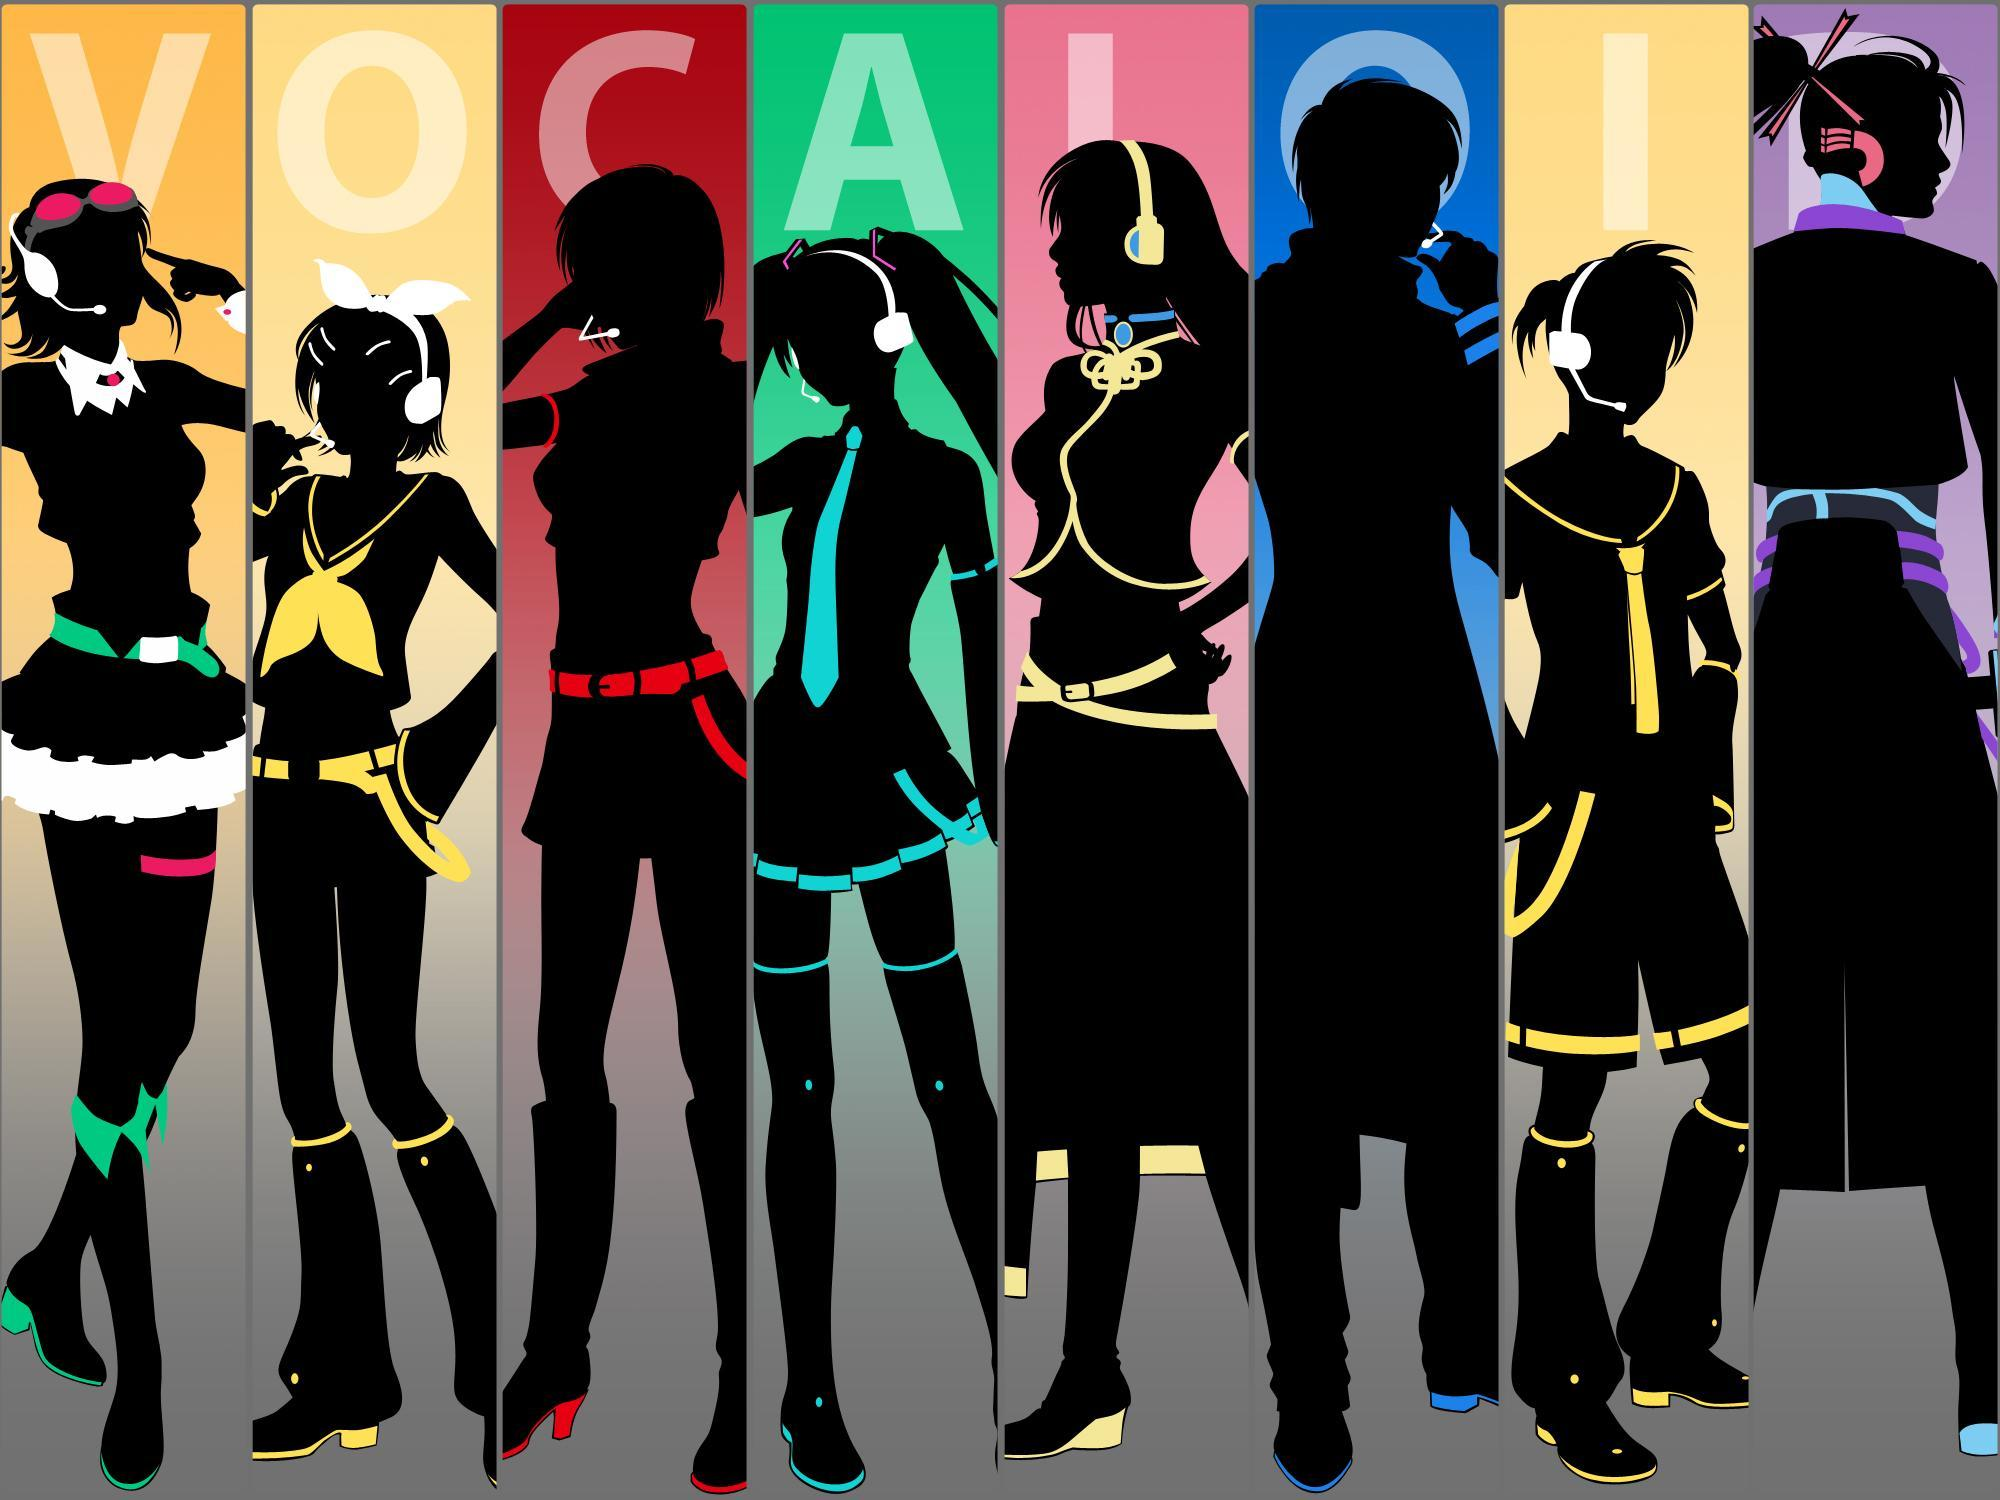 What Vocaloid Character Are You?